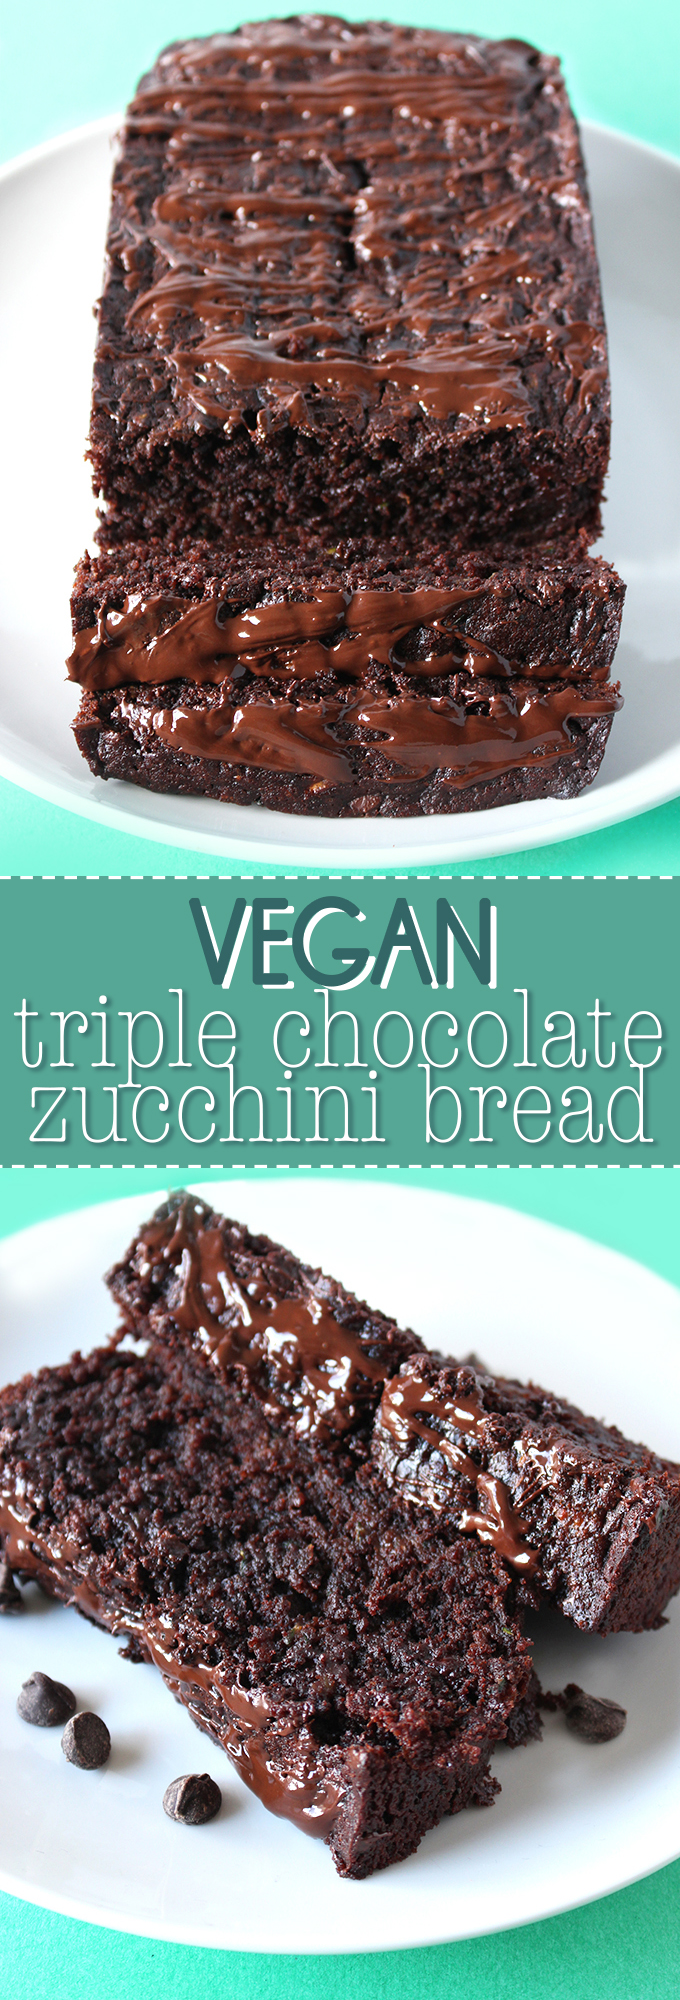 Vegan Triple Chocolate Zucchini Bread